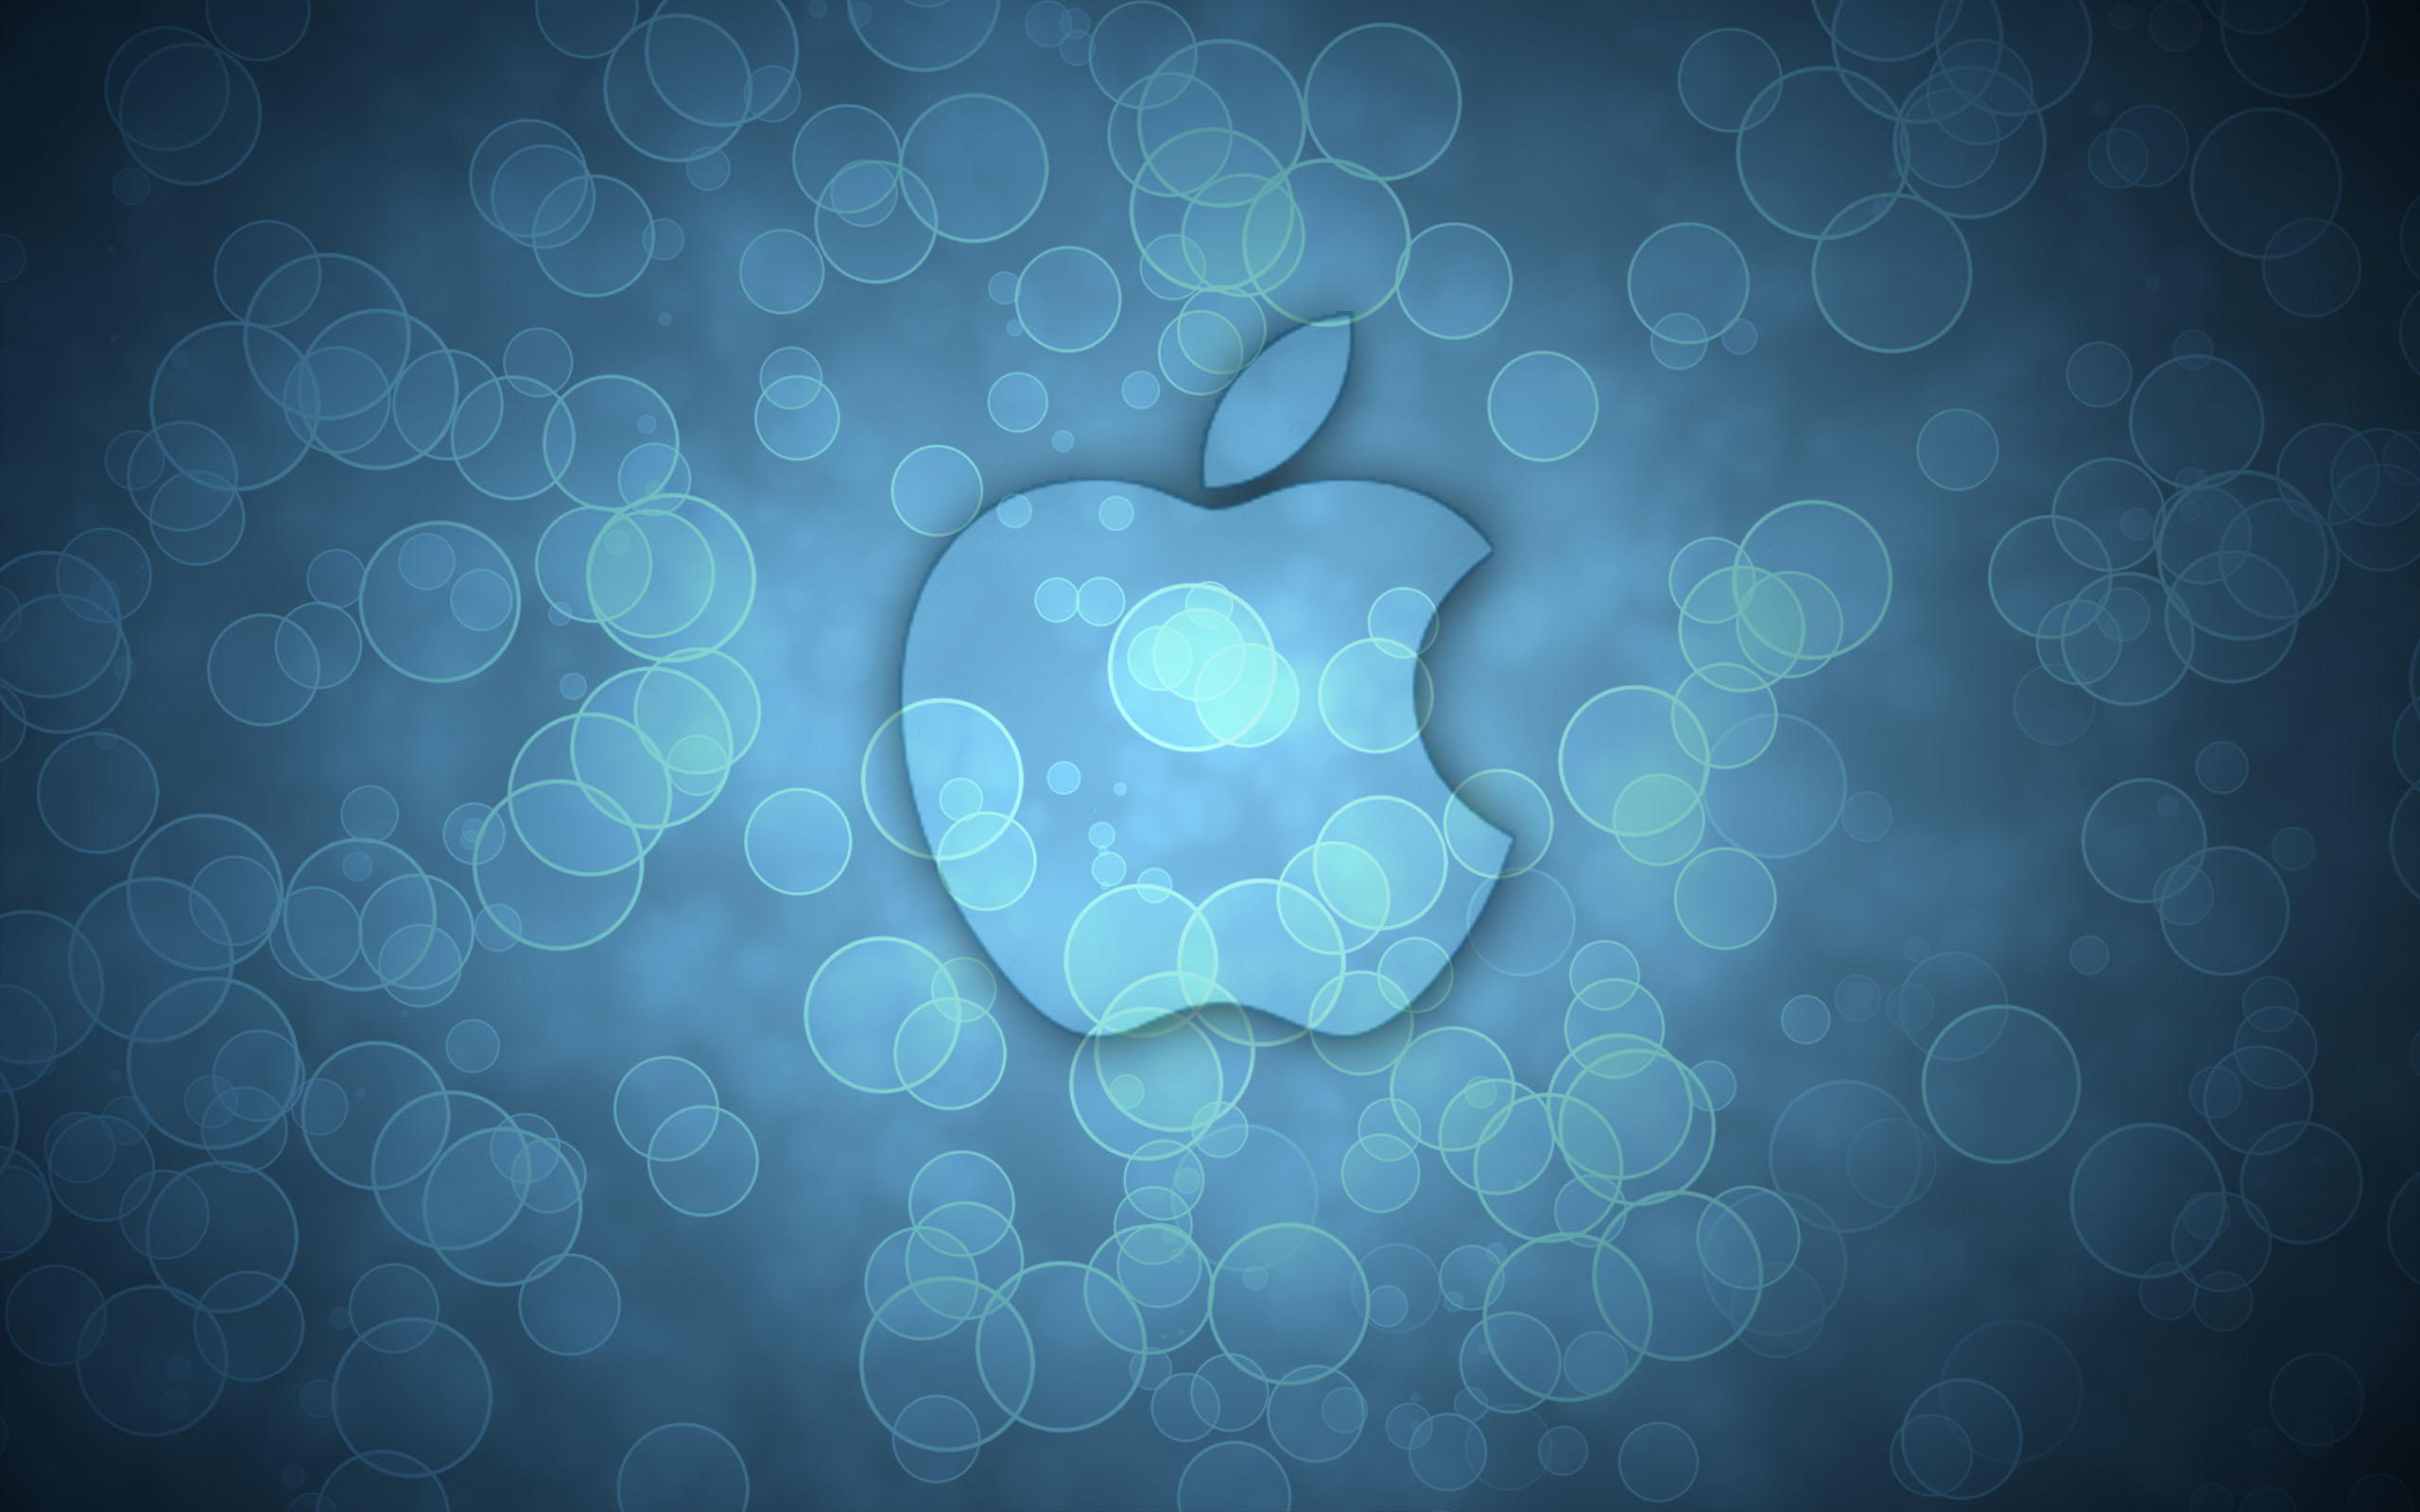 Hd Mac wallpaper   1035370 2560x1600